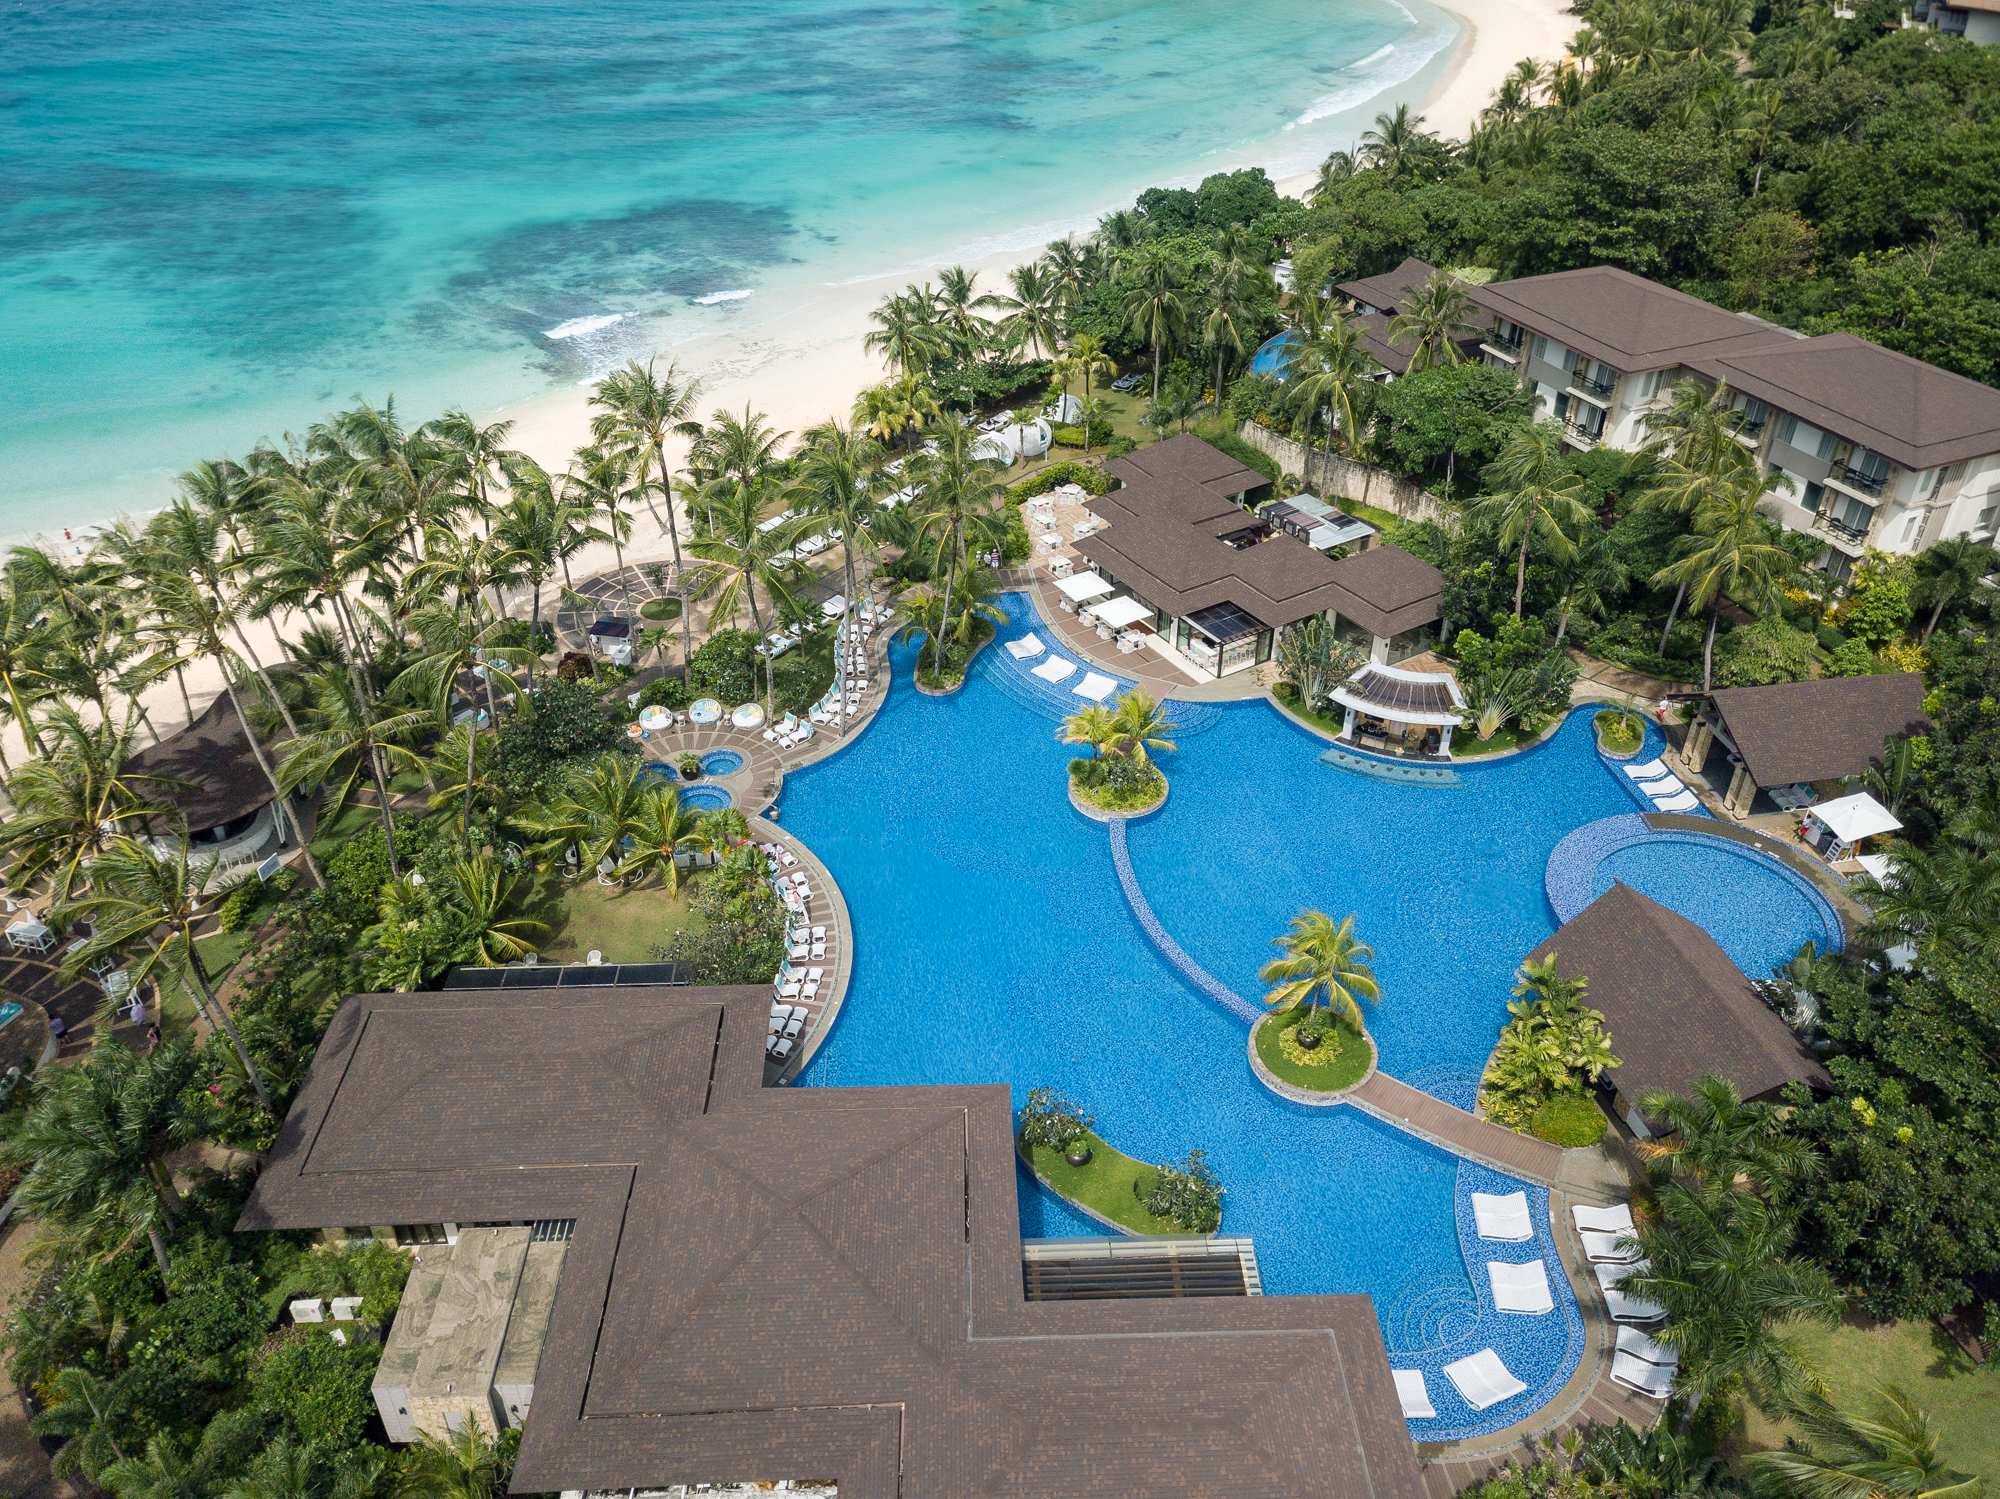 5D4N Boracay Package with Airfare | Movenpick Resort from Manila - day 1